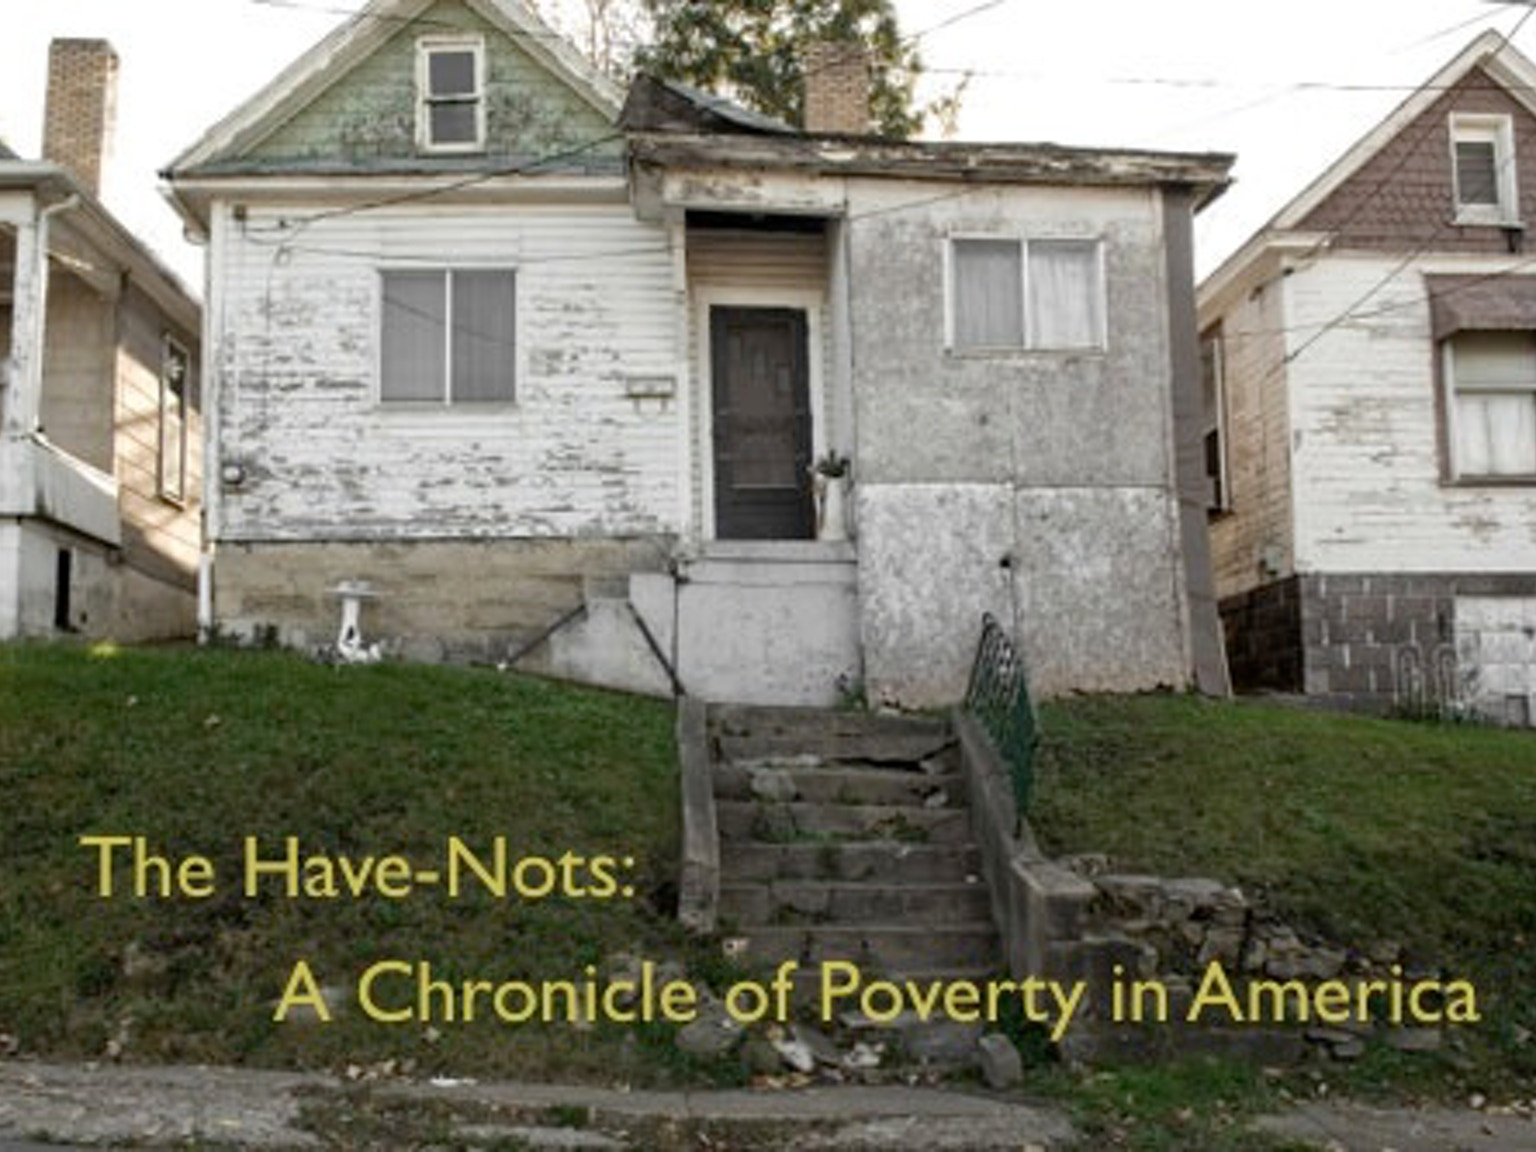 essays on poverty in america the have nots a chronicle of poverty in america by scott rodd